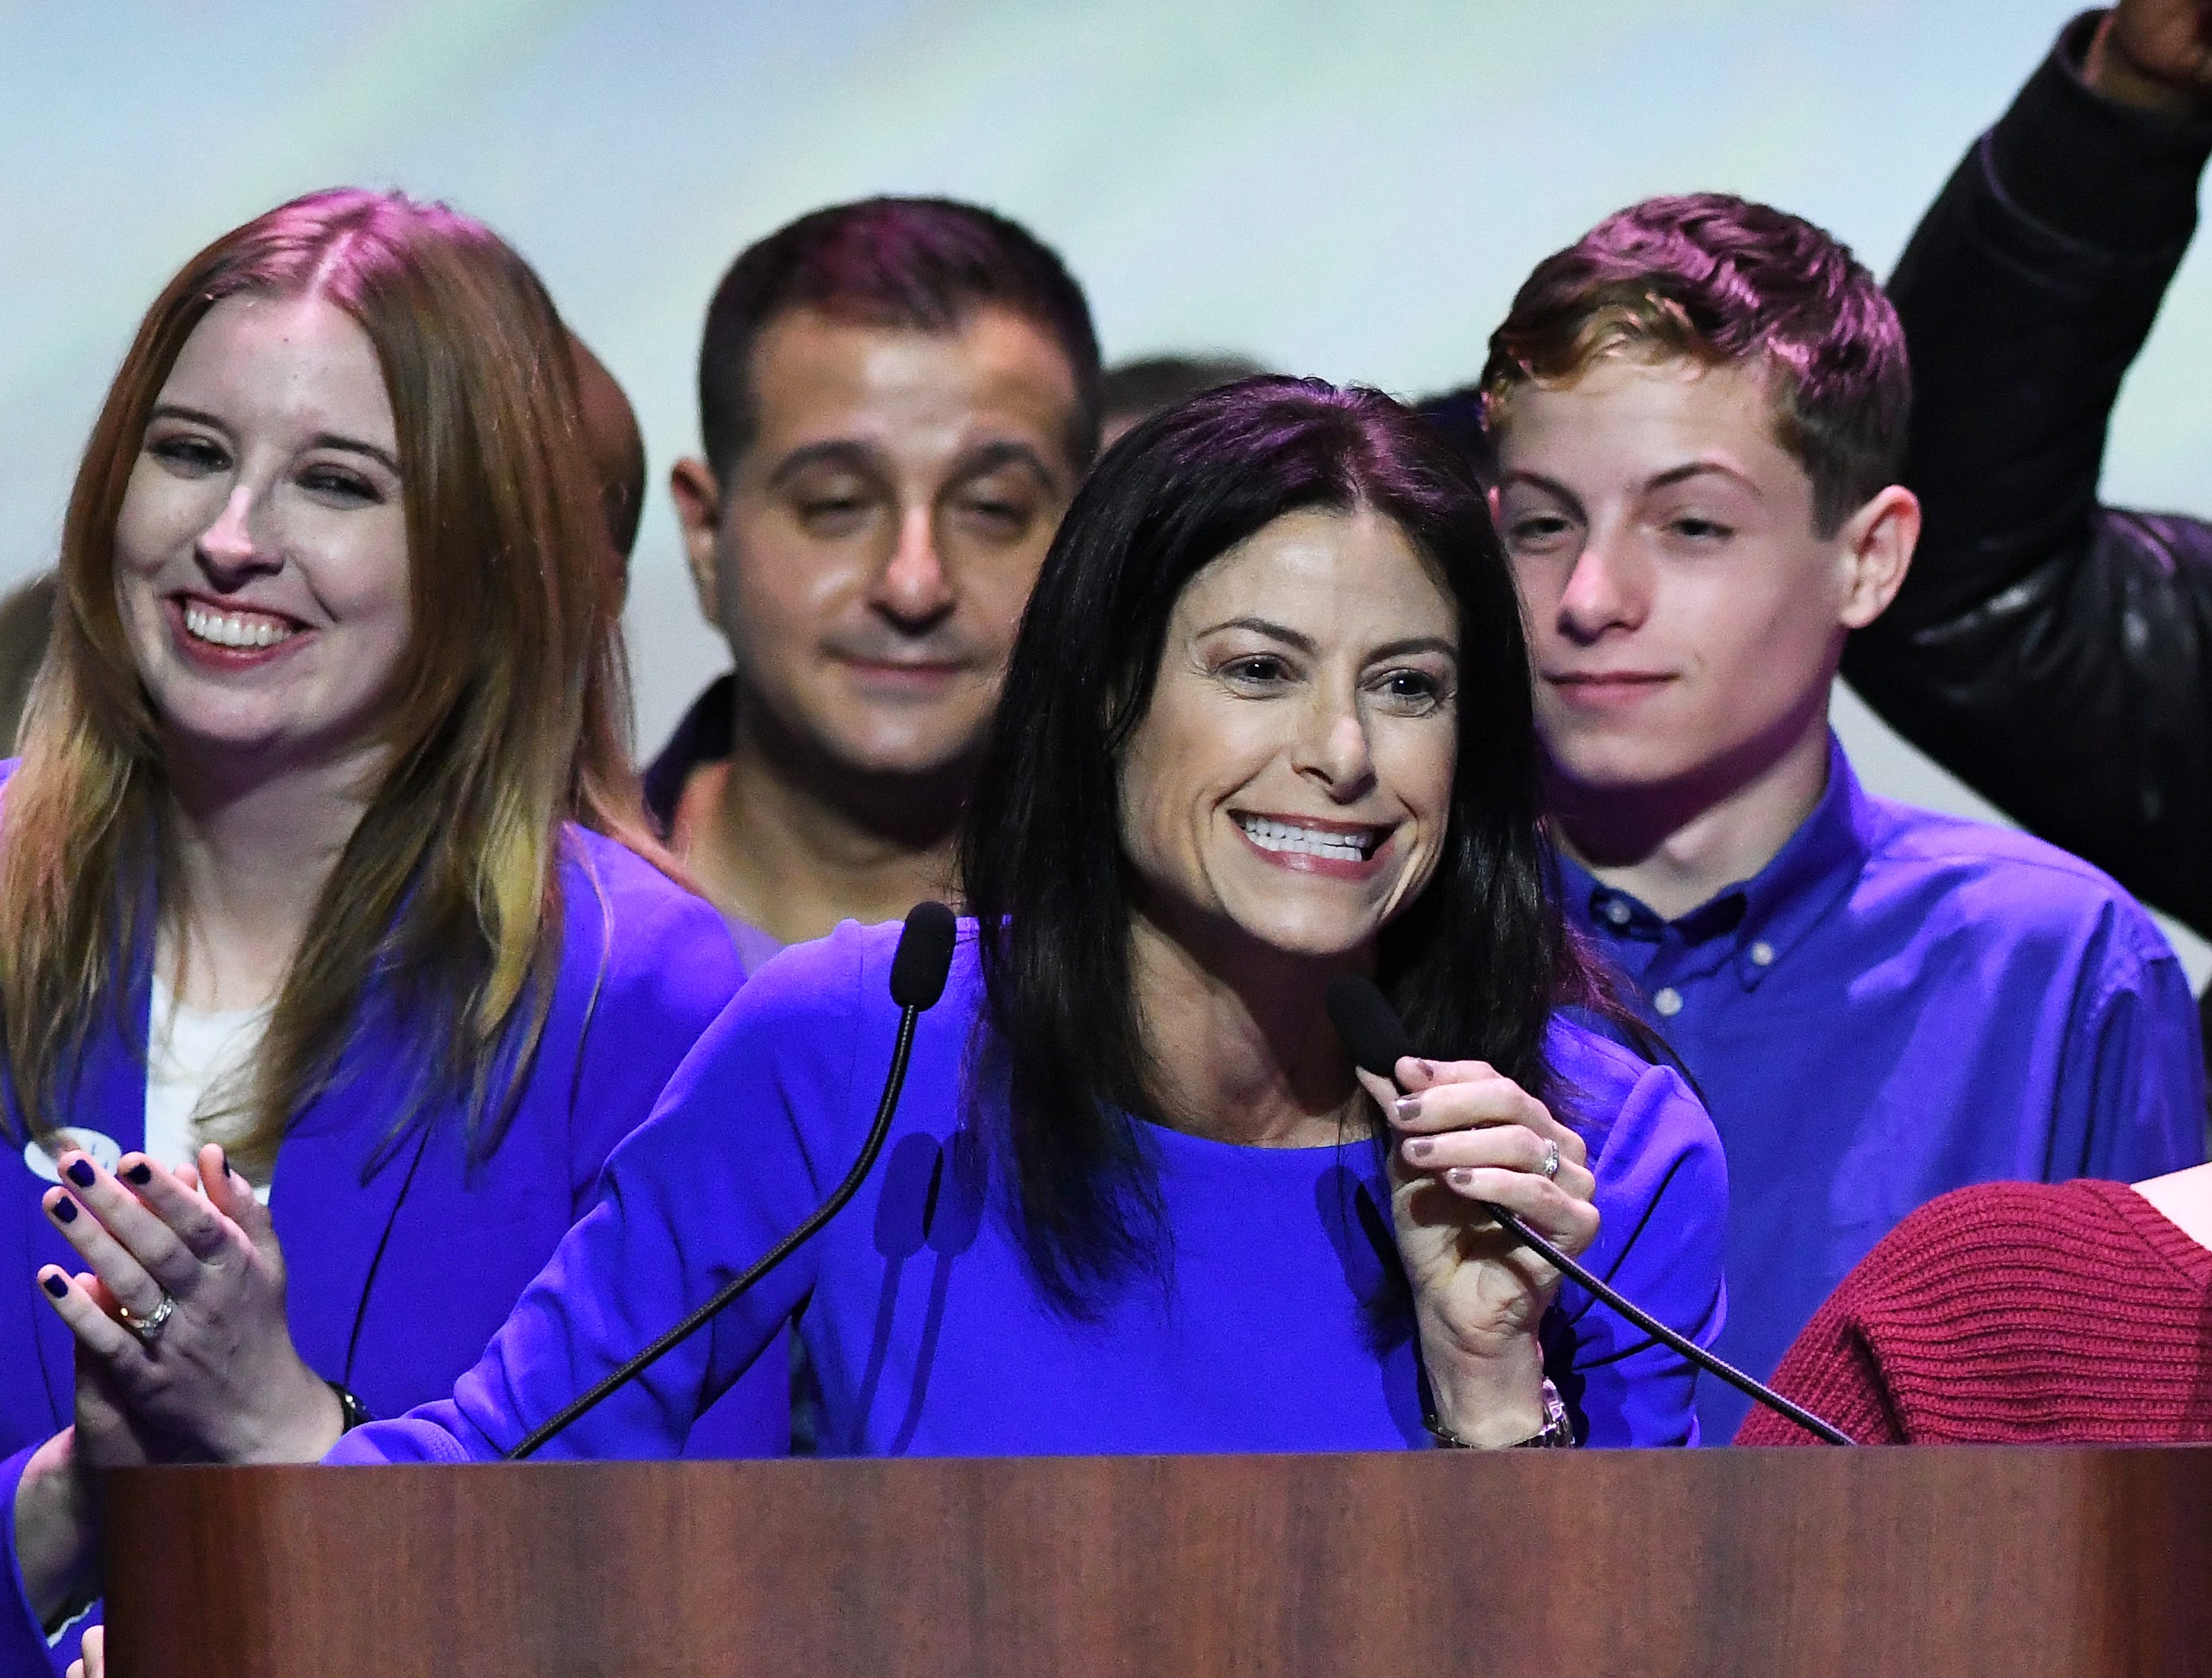 Michigan Attorney General candidate Dana Nessel thanks supporters at the Democrats' election night party in Detroit. At left is her wife,  Alanna Maguire